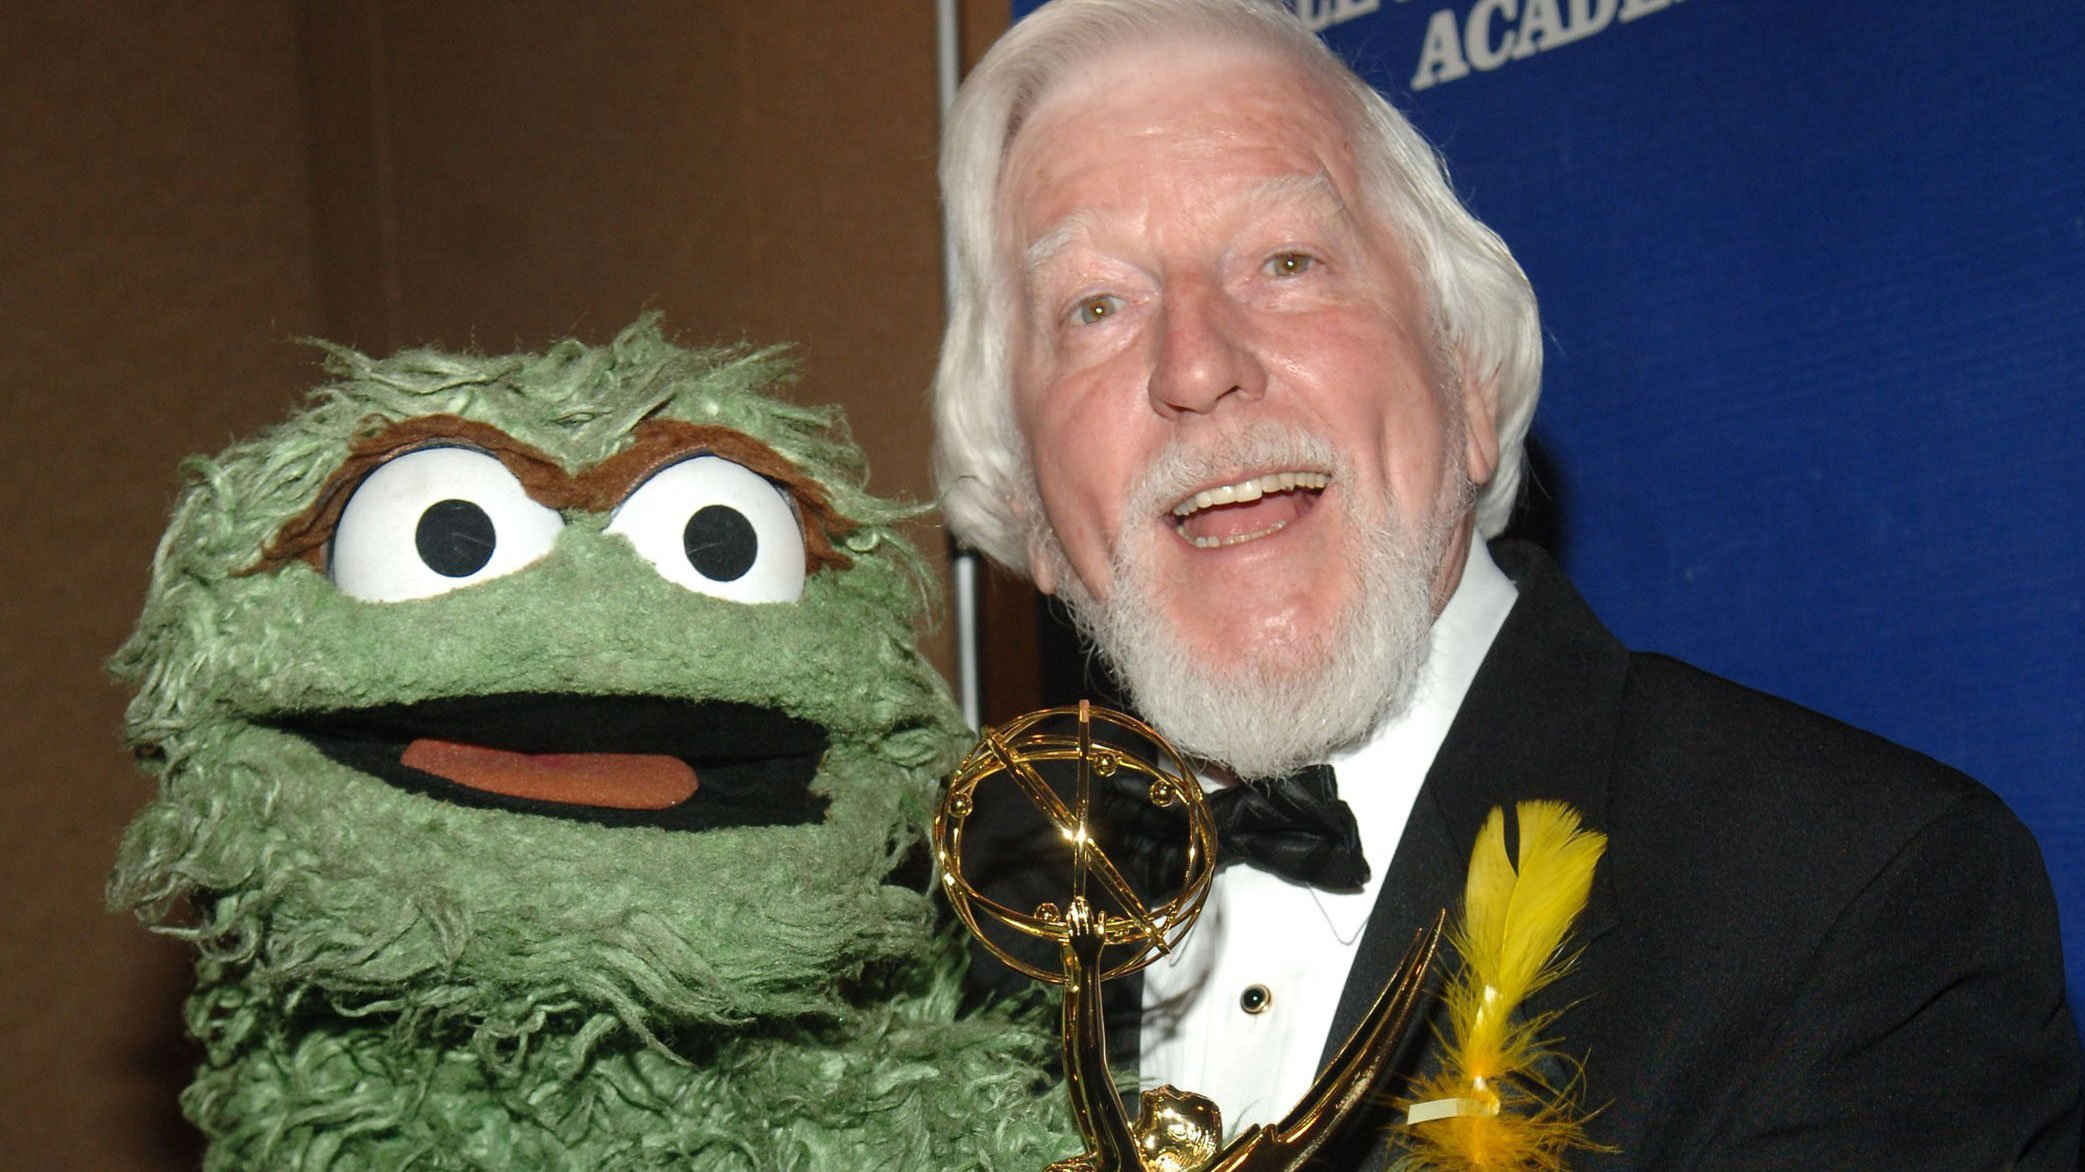 Caroll Spinney, the Sesame Street puppeteer behind Big Bird and Oscar the Grouch, has died